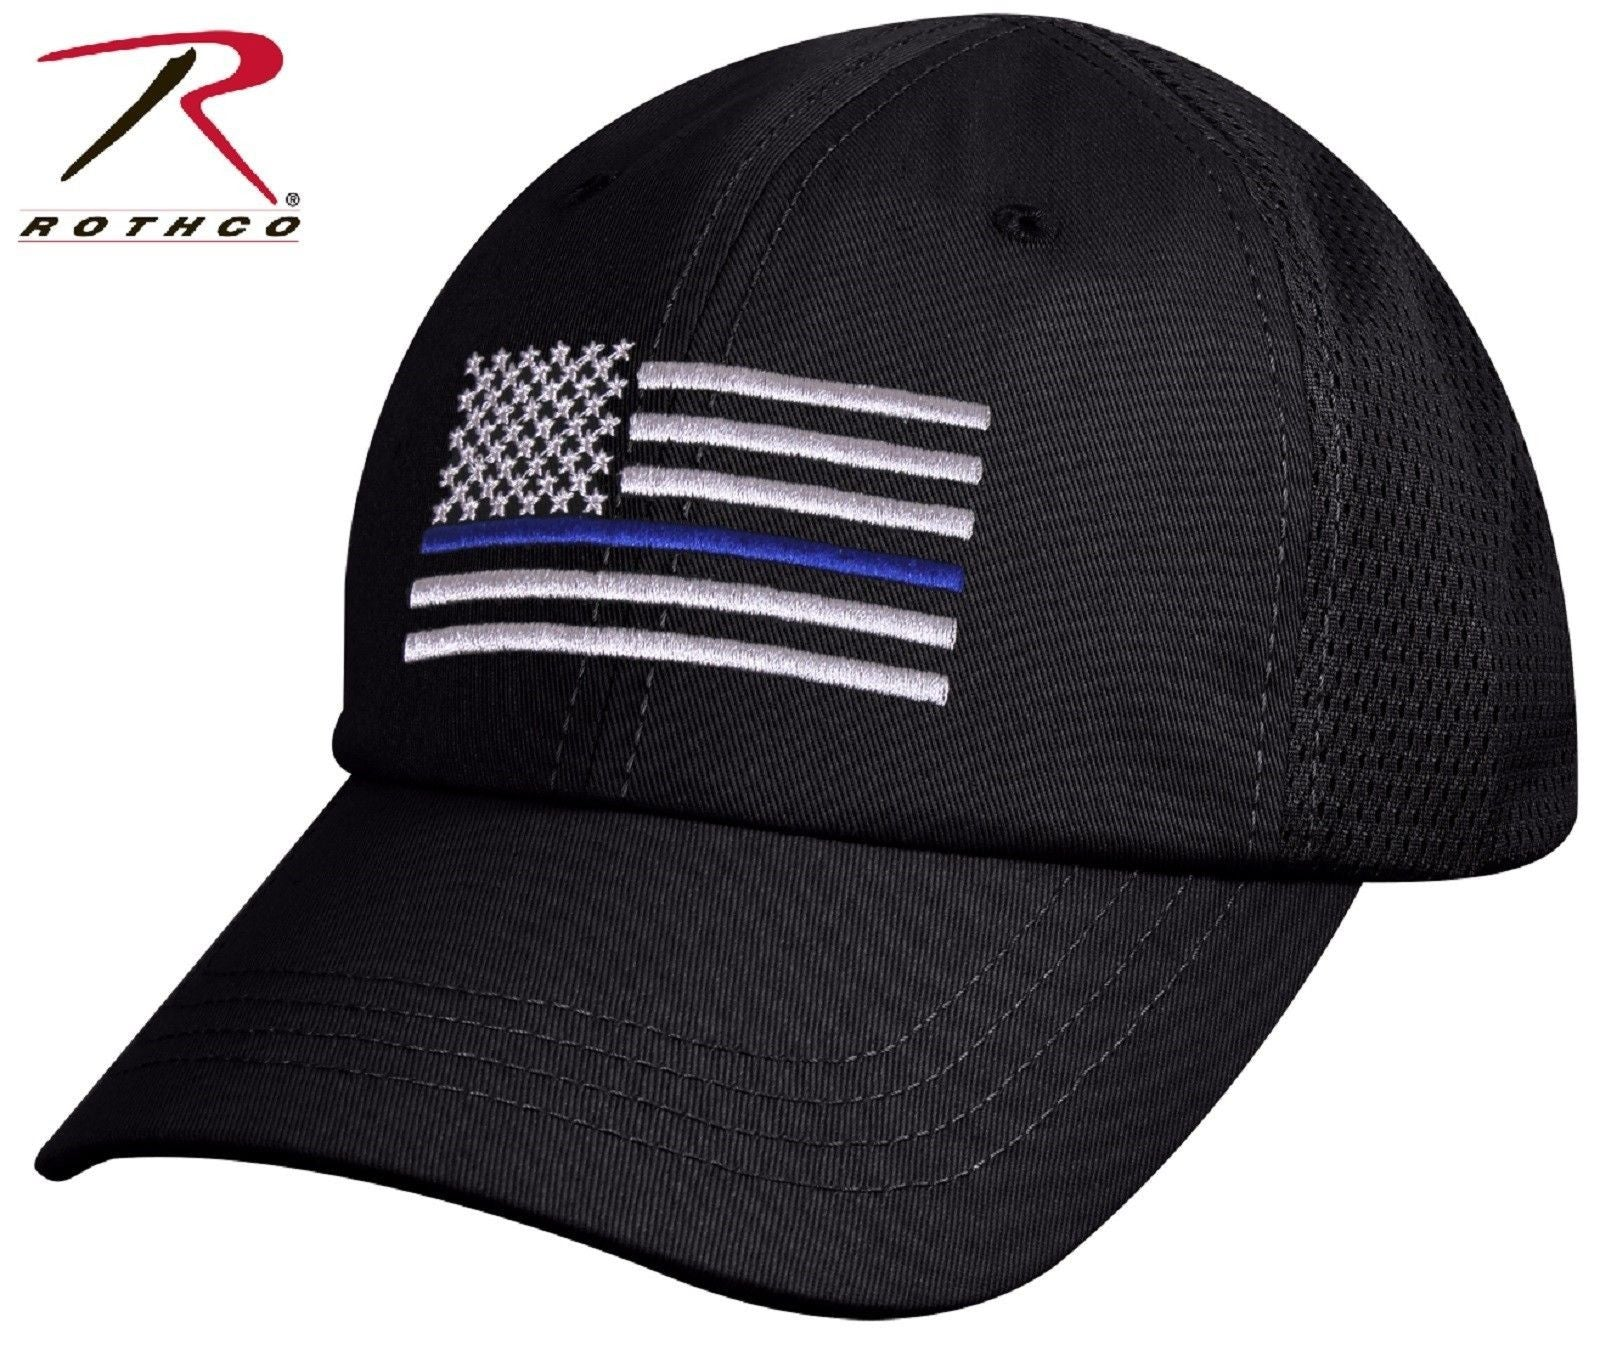 94e3bd1d63b72 Mens USA American Flag Thin Blue Line Mesh Cap - Rothco Black TBL Baseball  Hat